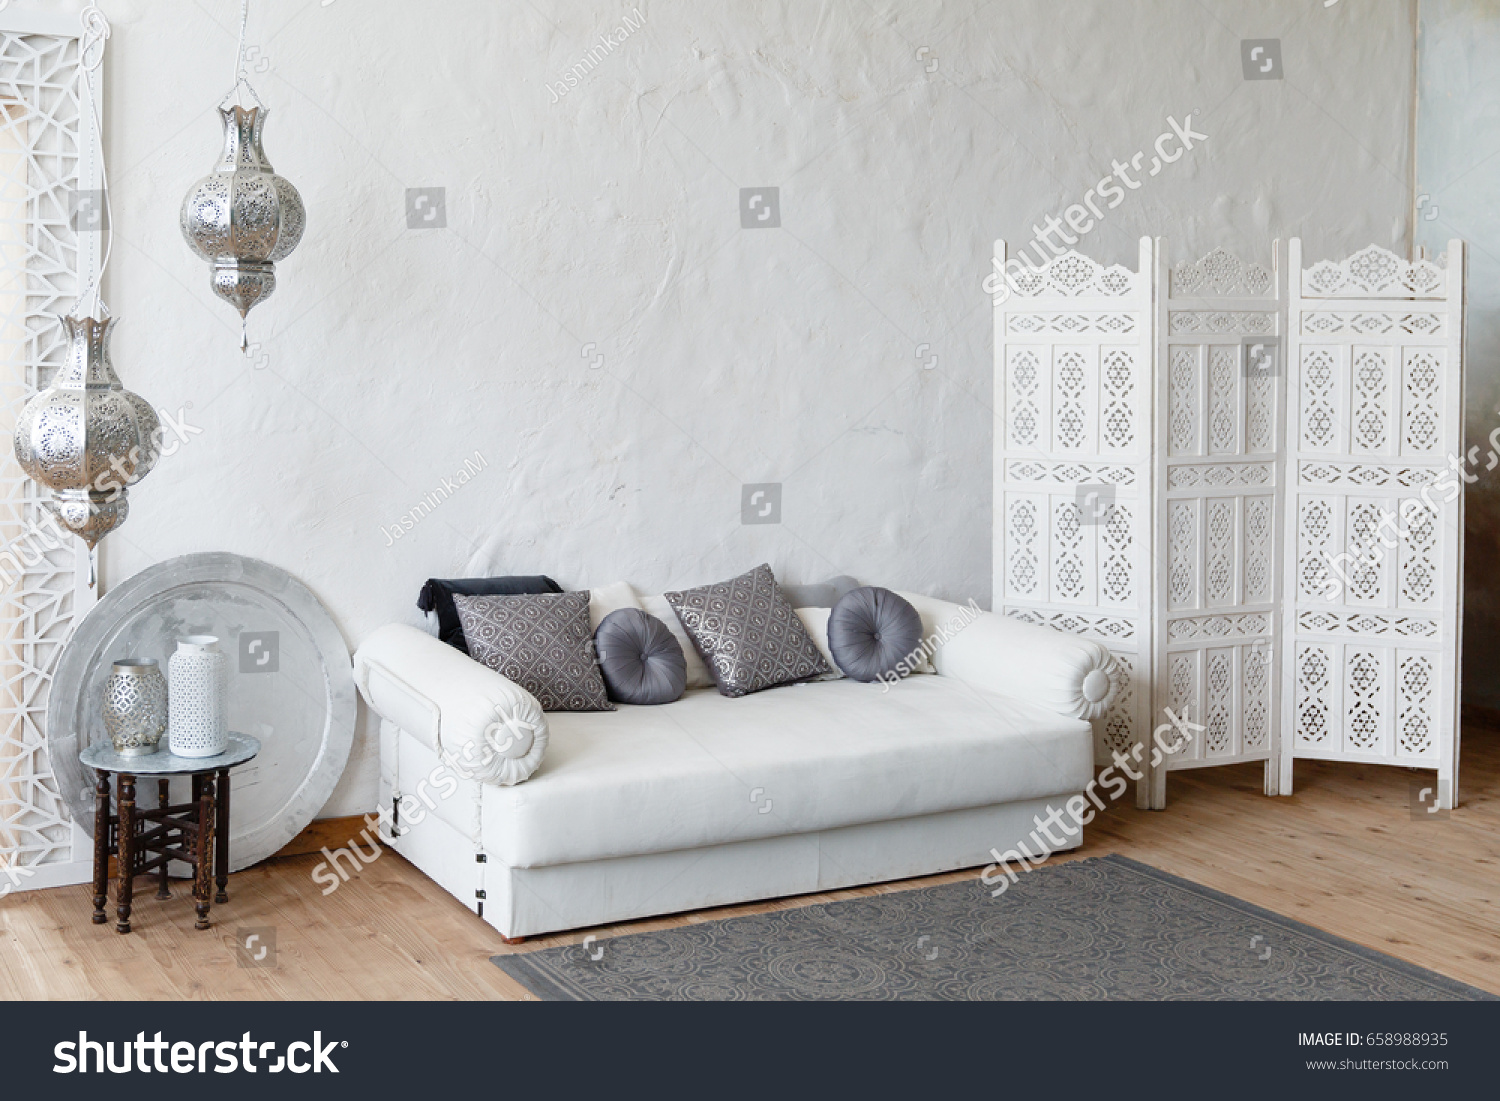 Eastern Traditional Interior Morocco Style Room Stock Photo & Image ...